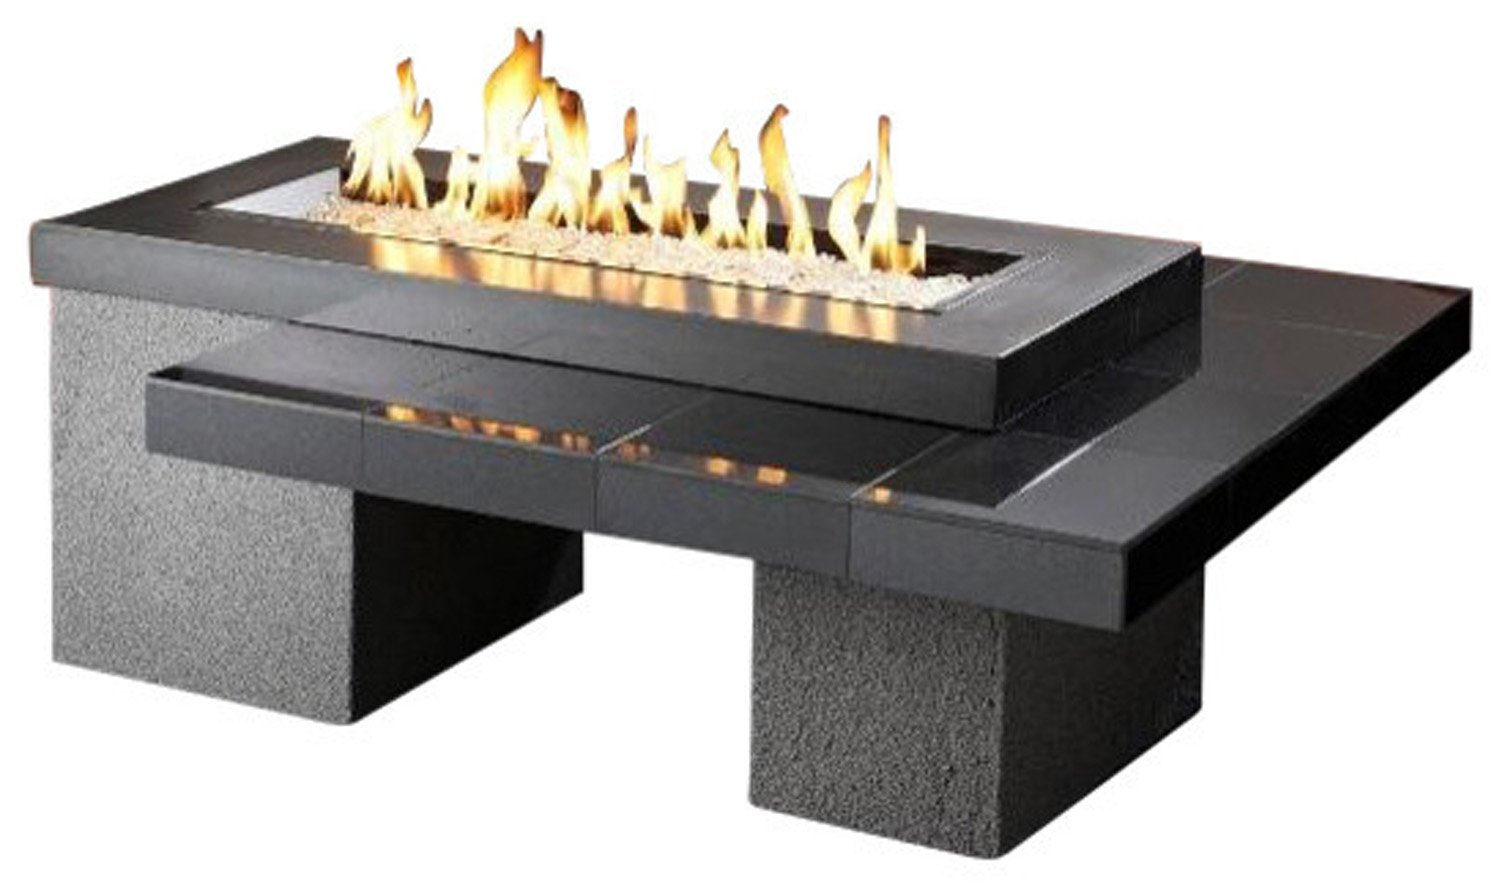 17 High Btu Fire Pit Tables 60 000 Btu Propane Fire Pit